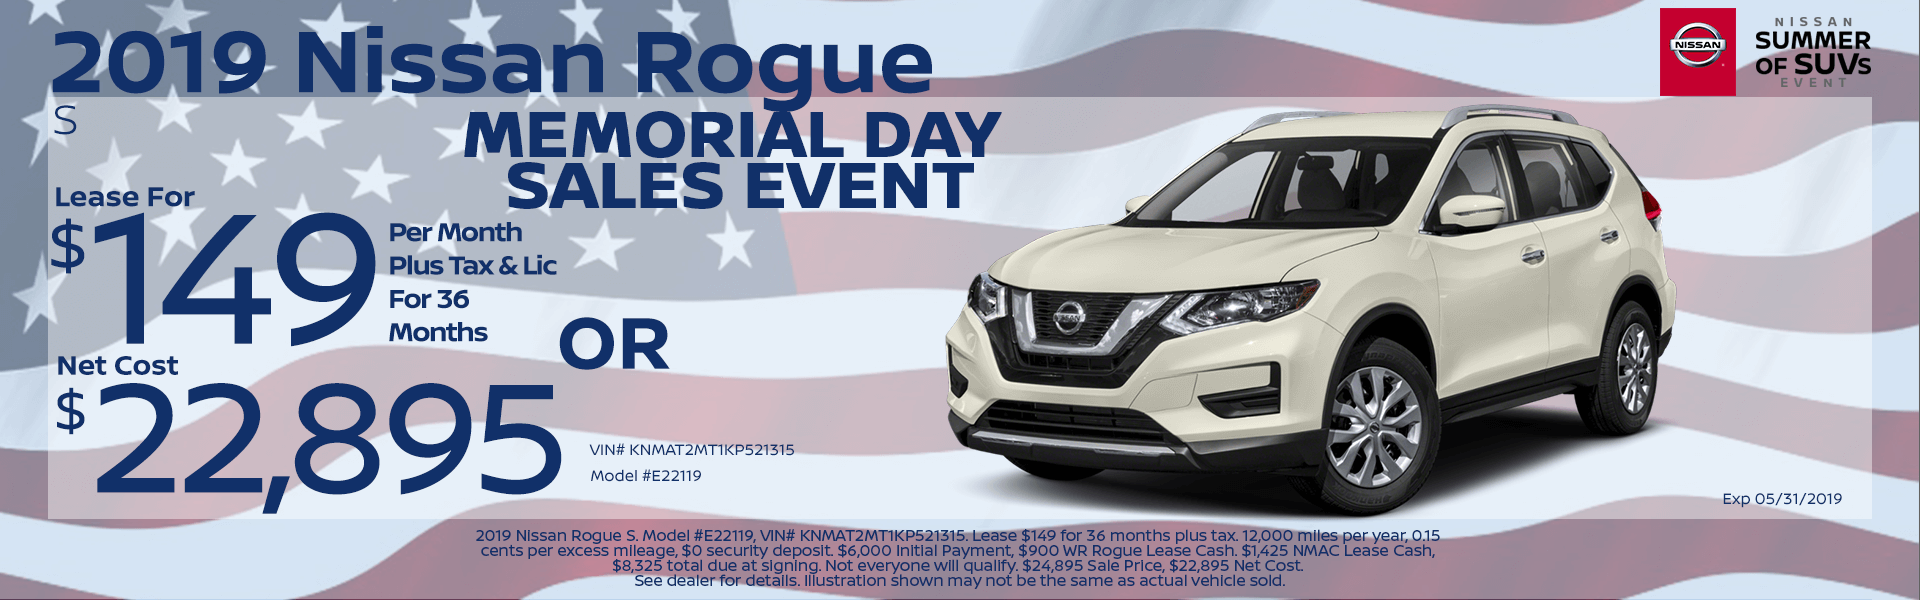 2019 Nissan Rogue Special